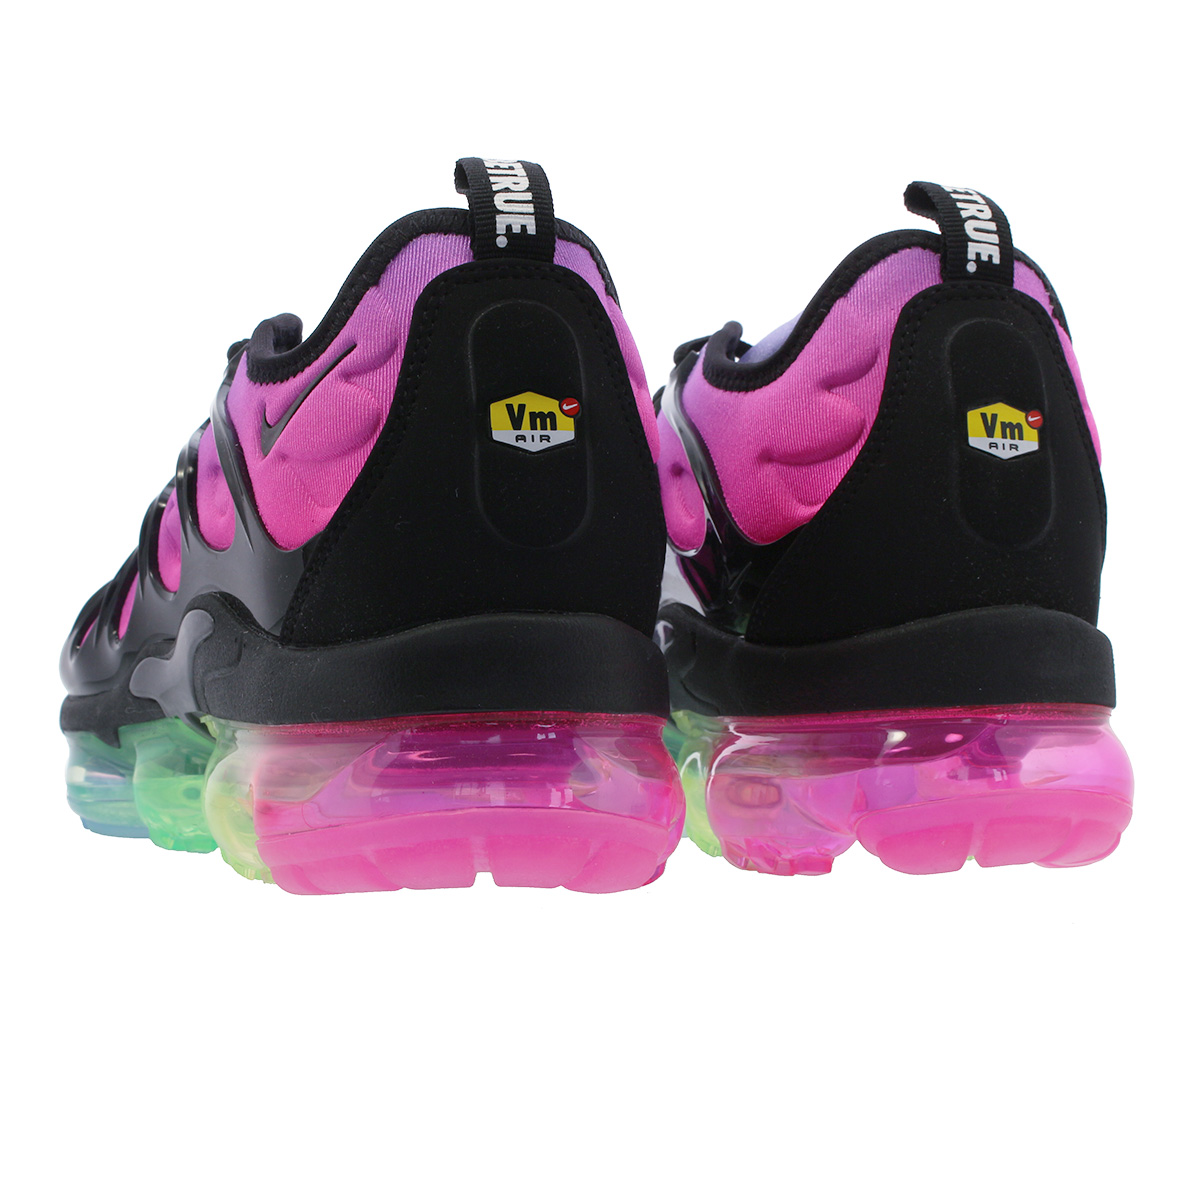 differently 67f6a 1ffa8 NIKE AIR VAPORMAX PLUS Nike vapor max plus PURPLE PULSE/PINK BLAST/MULTI  COLOR/BLACK ar4791-500